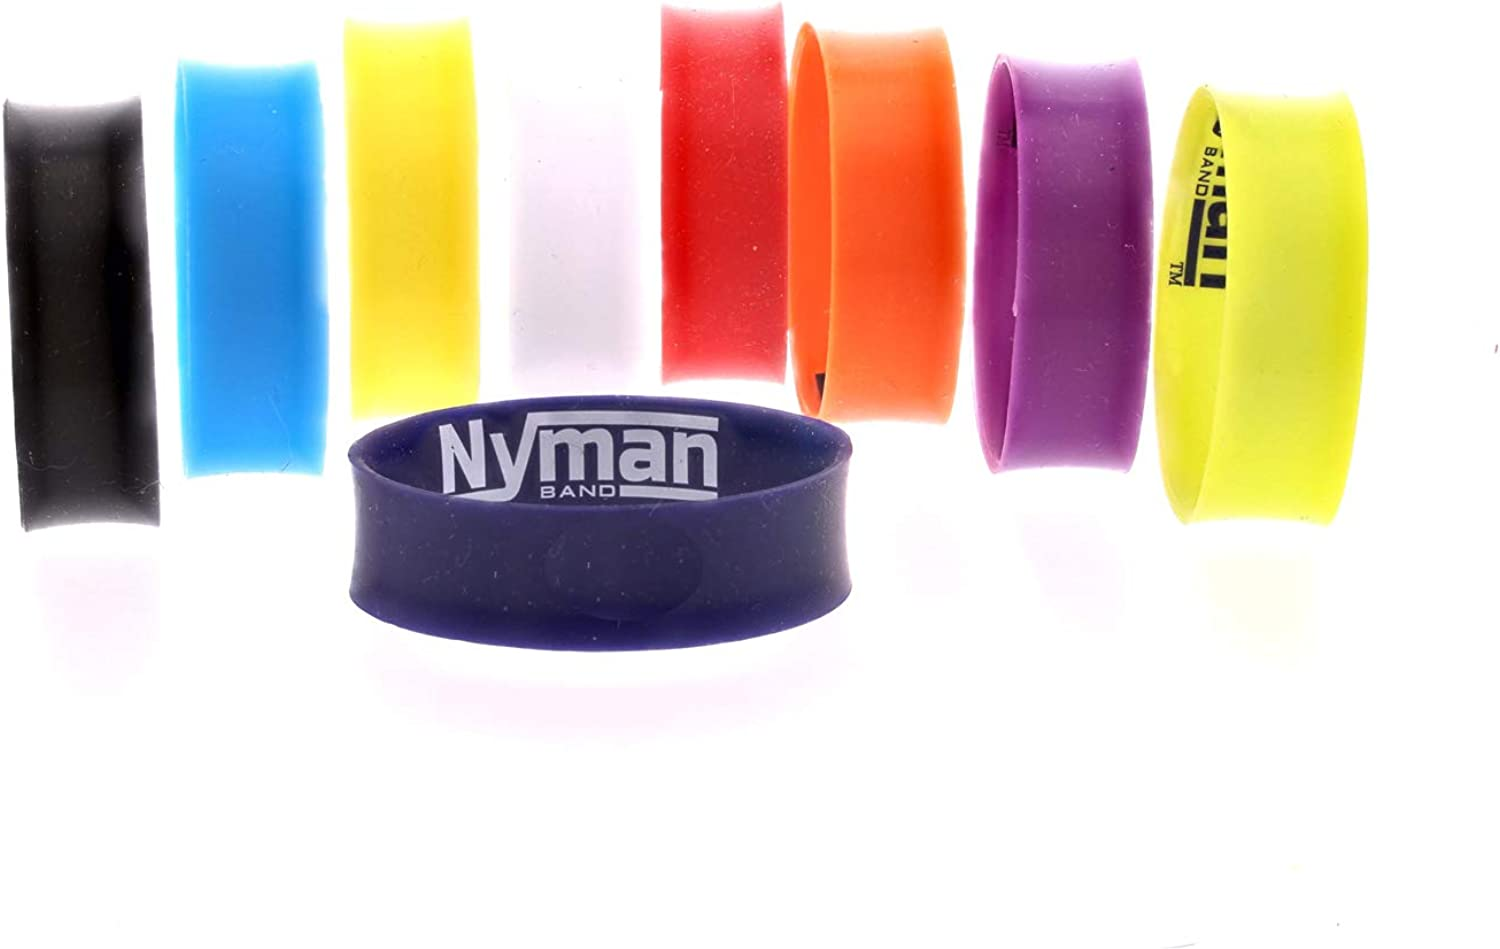 3 Elastic Rubber Band to Secure Your Money Credit Cards 13mm wide